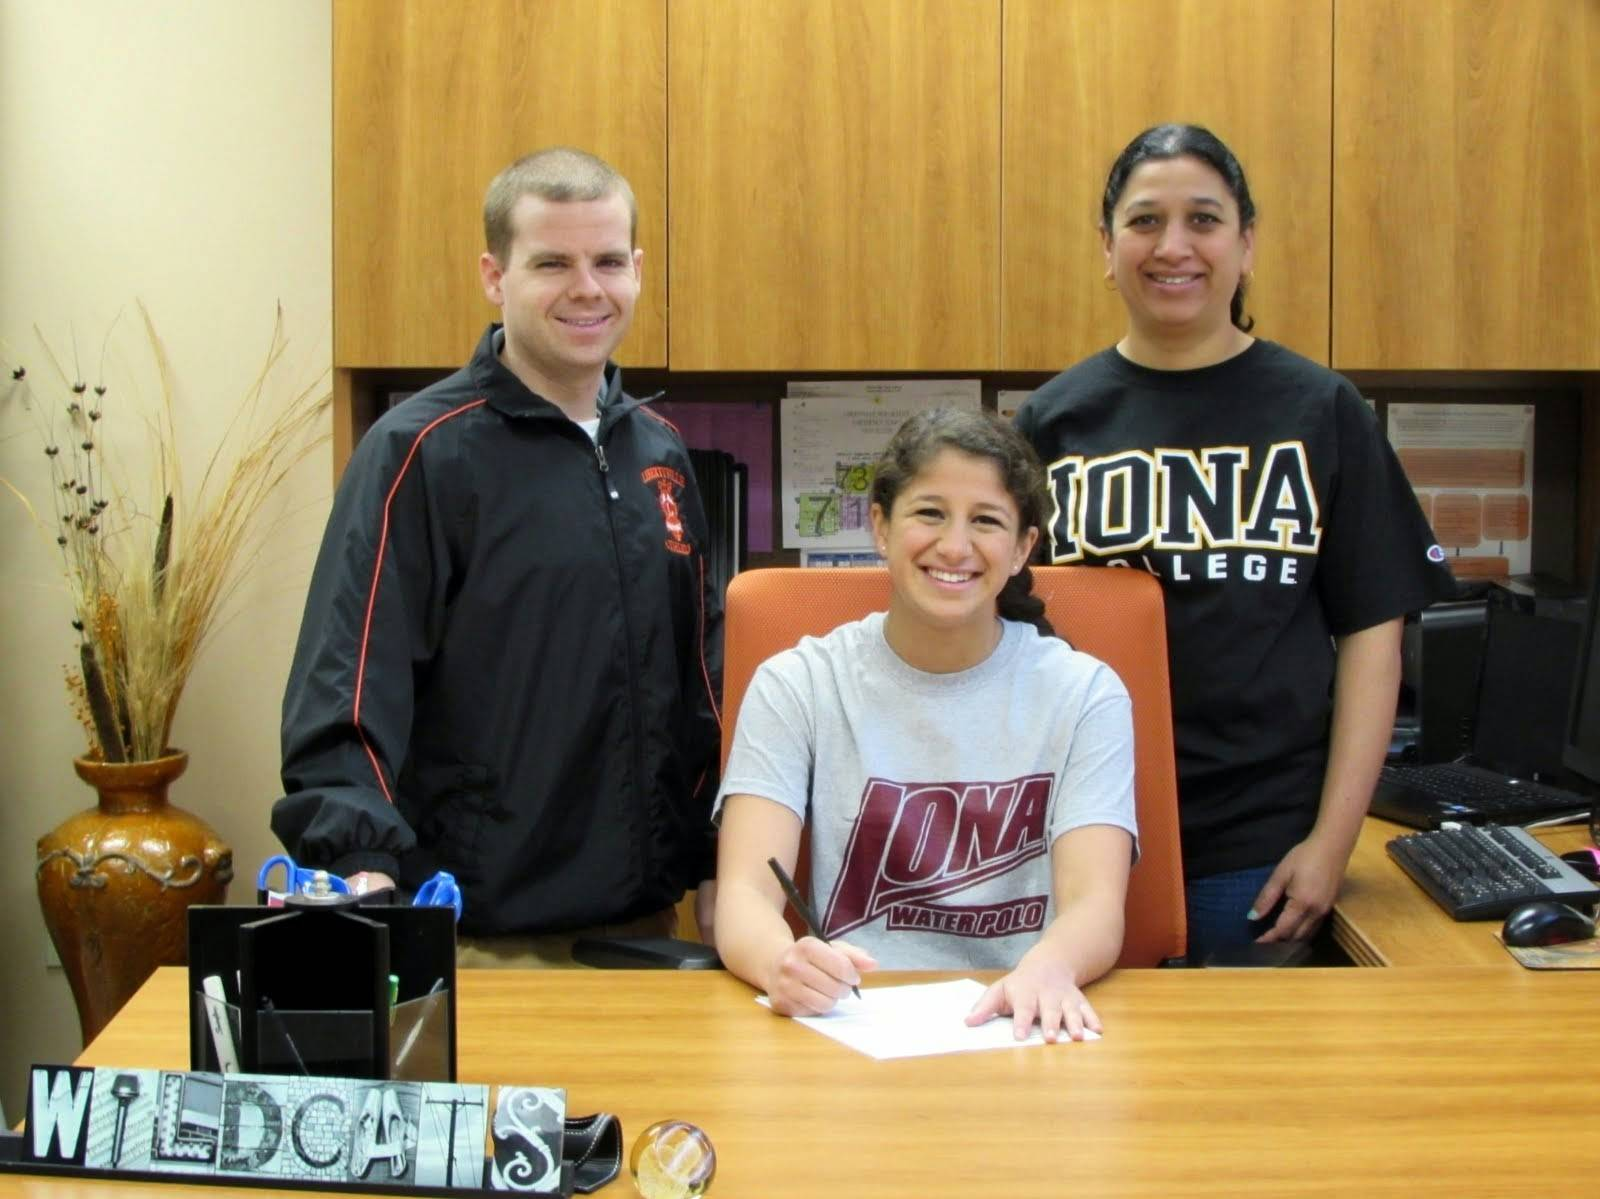 Devika Joshi of Libertyville is committed to play water polo at Iona.